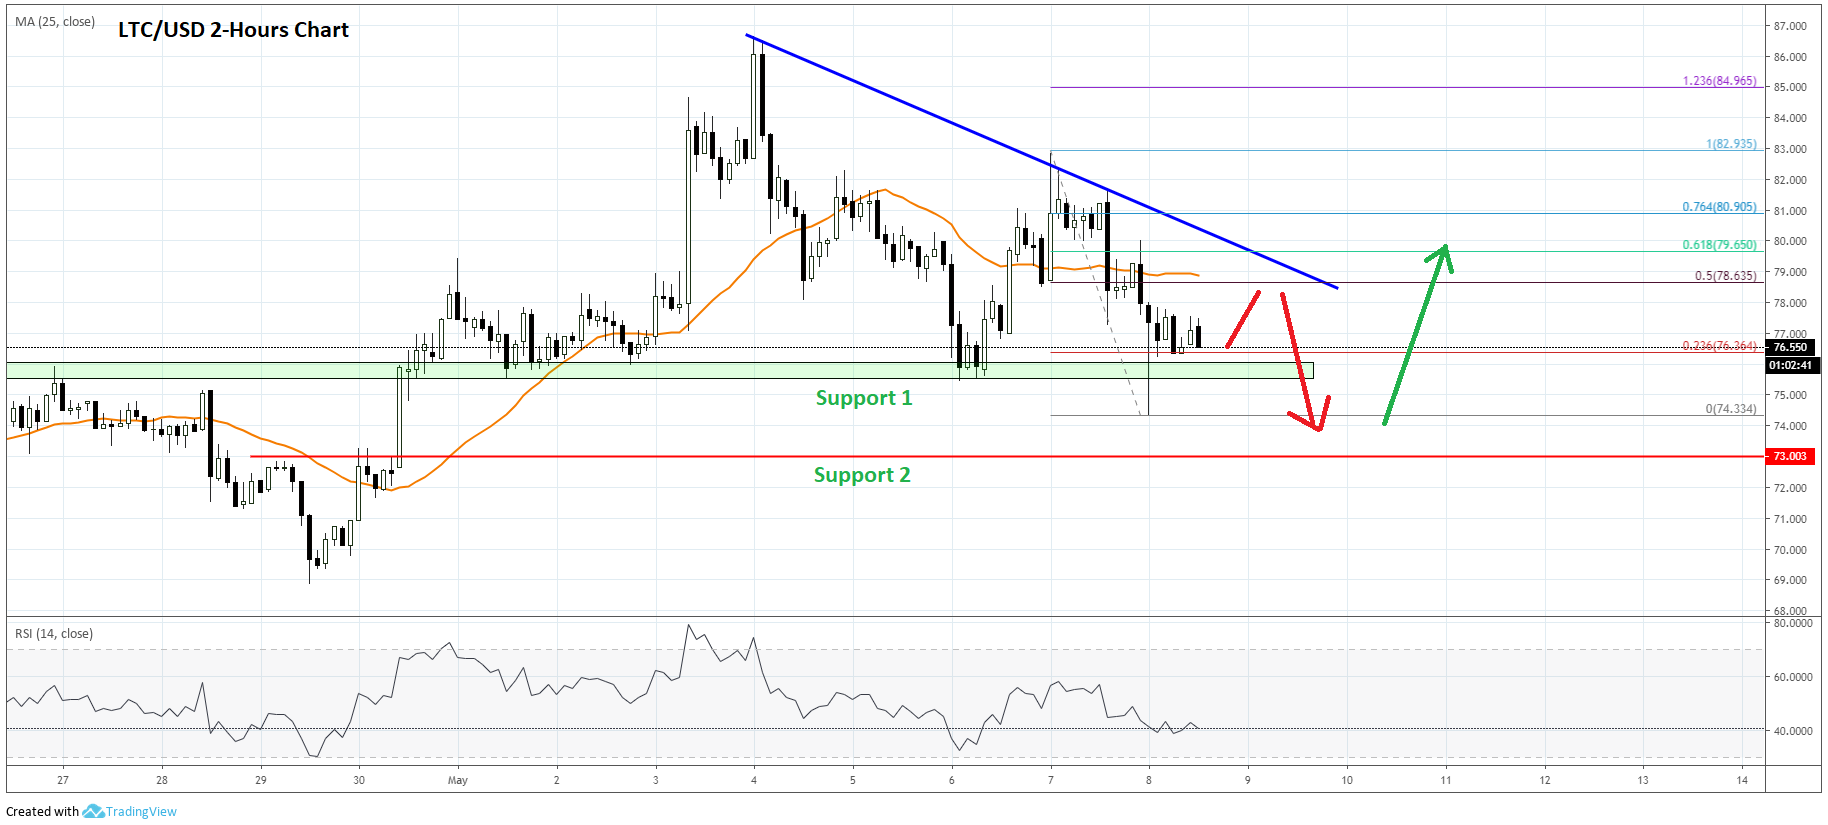 Litecoin (LTC) Price Prediction: One Last Dip Before Higher?